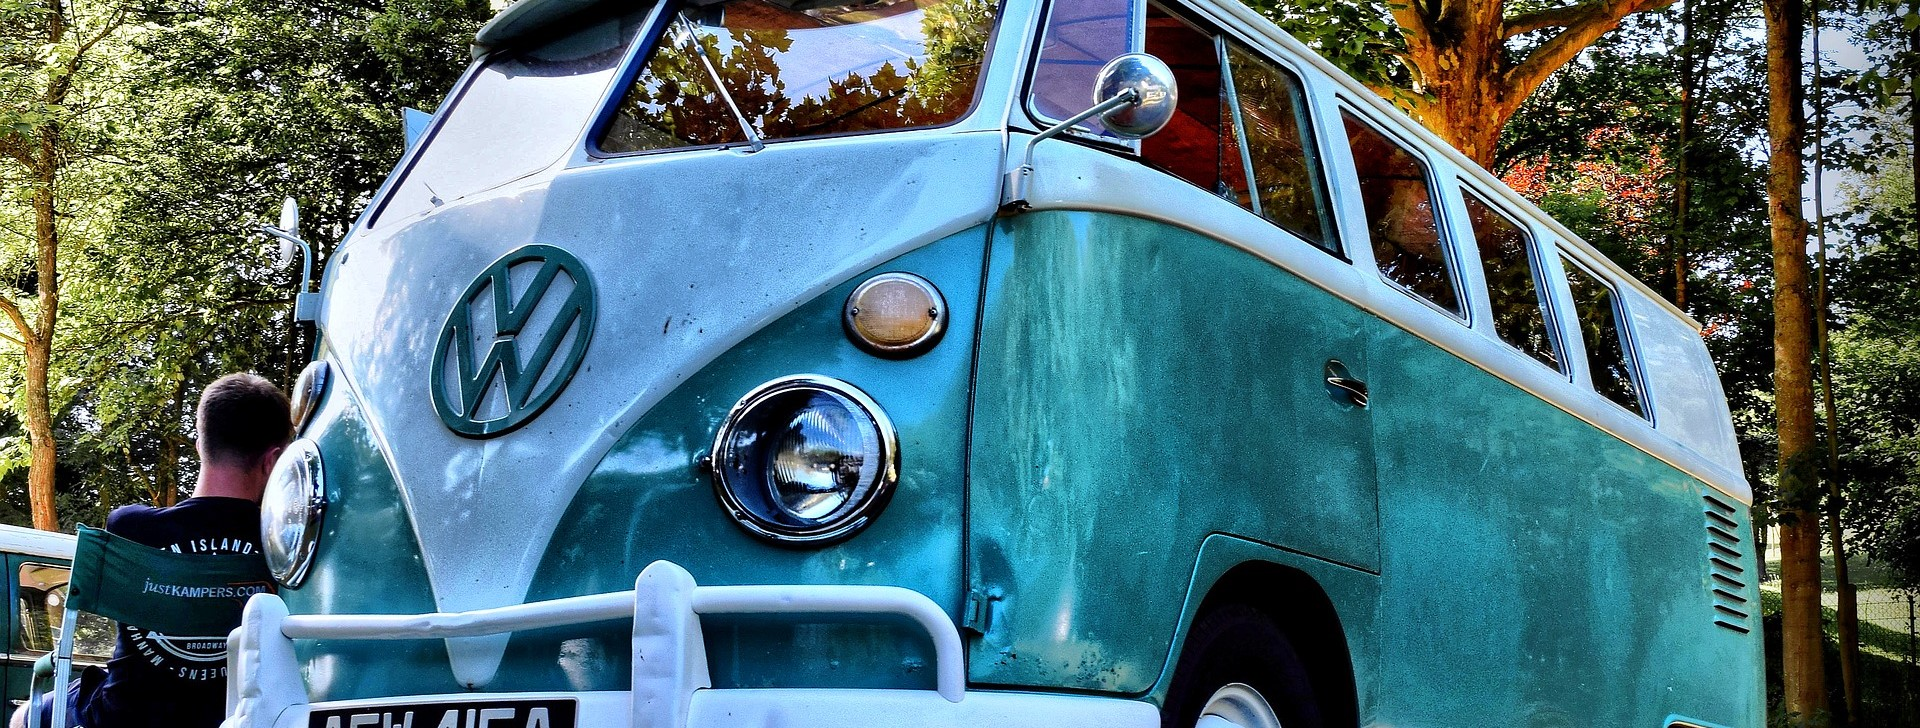 Old Volkswagen Bus in Pompano Beach - CarDonations4Cancer.org